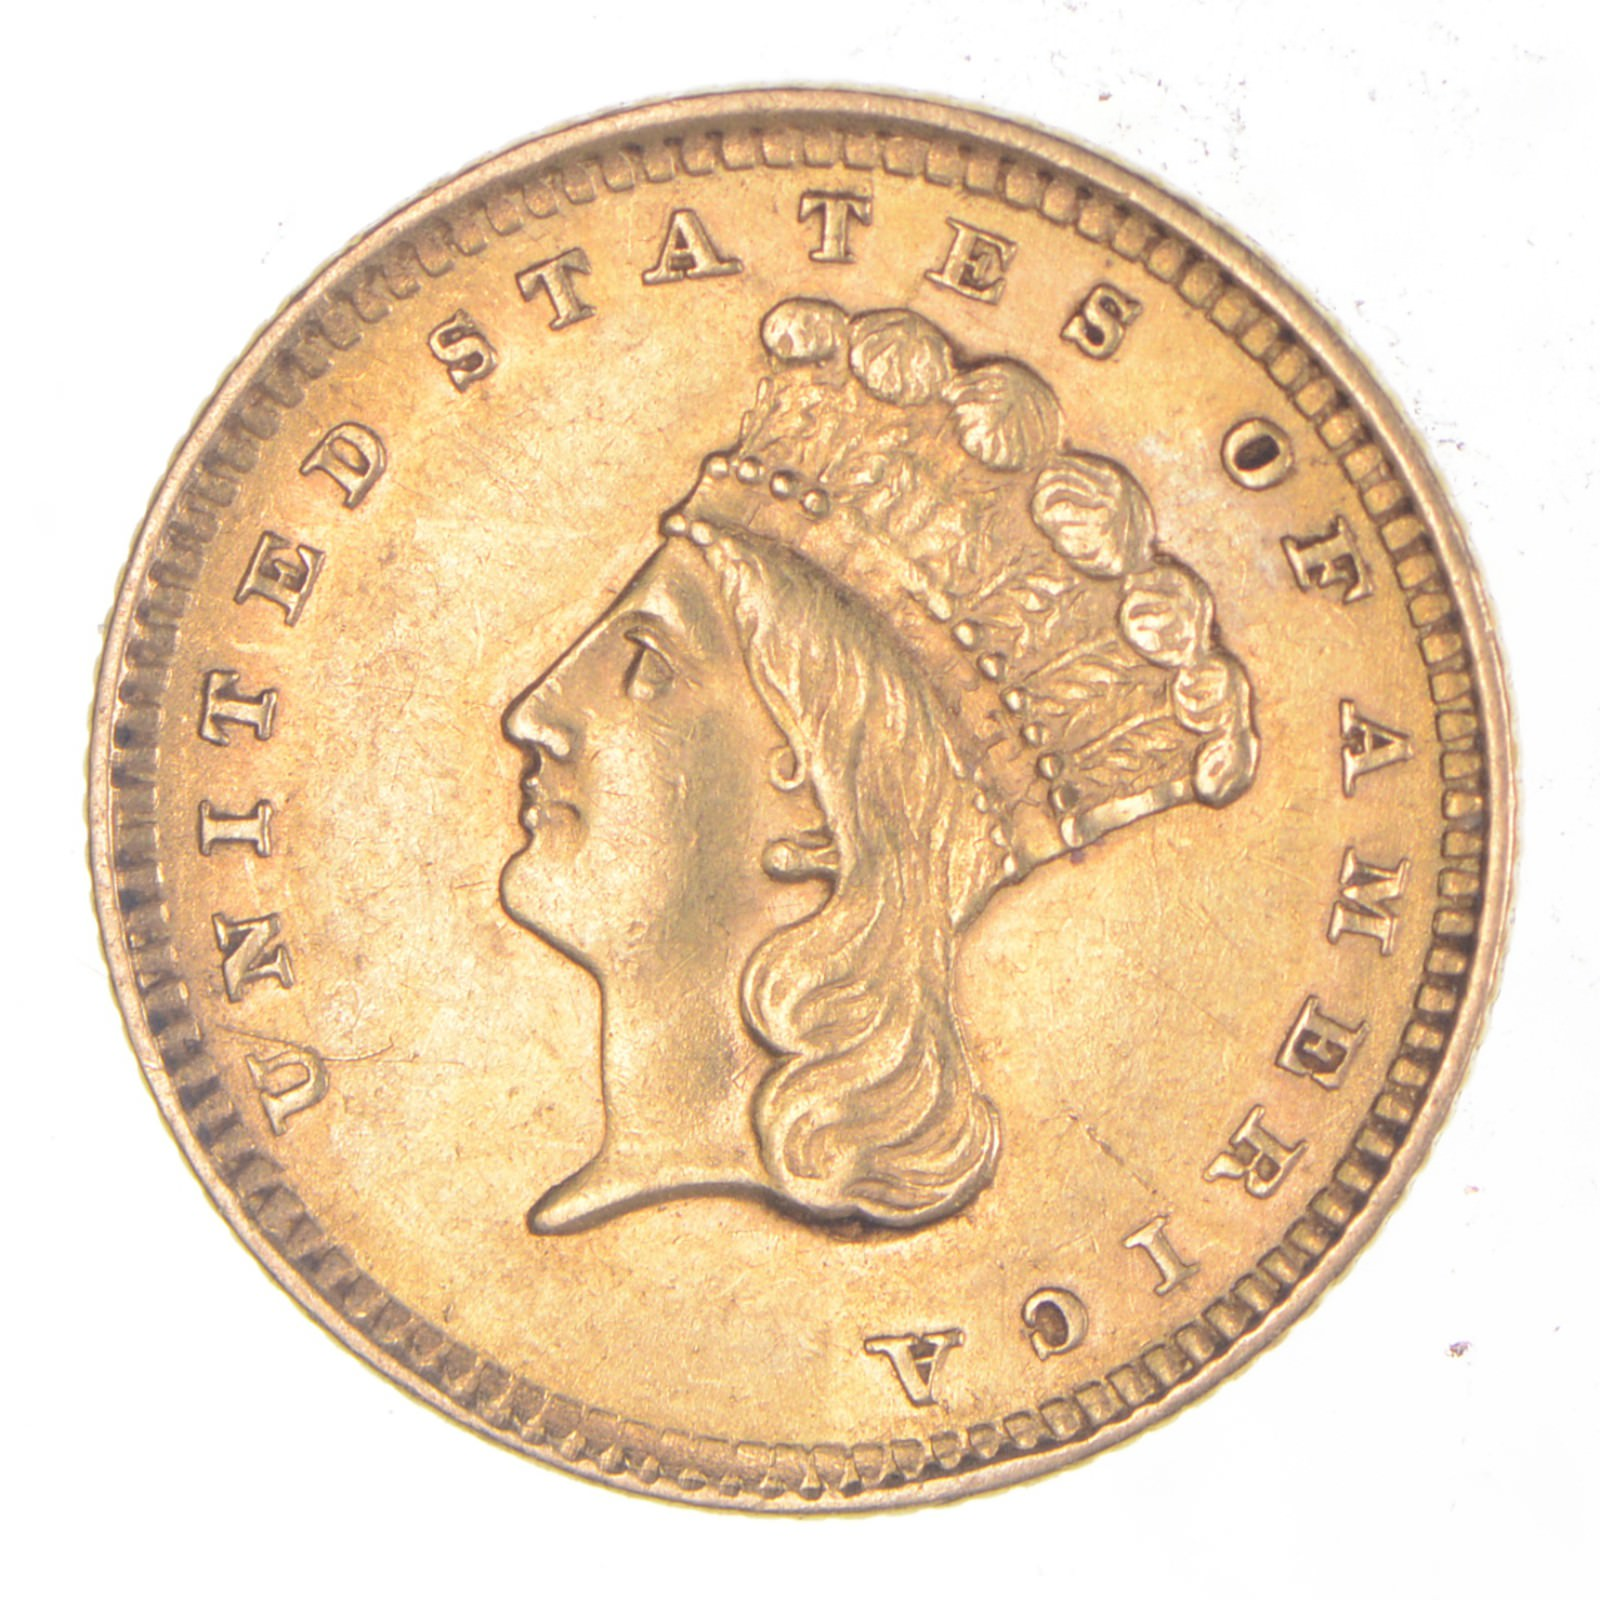 1 00 United States Gold Coin